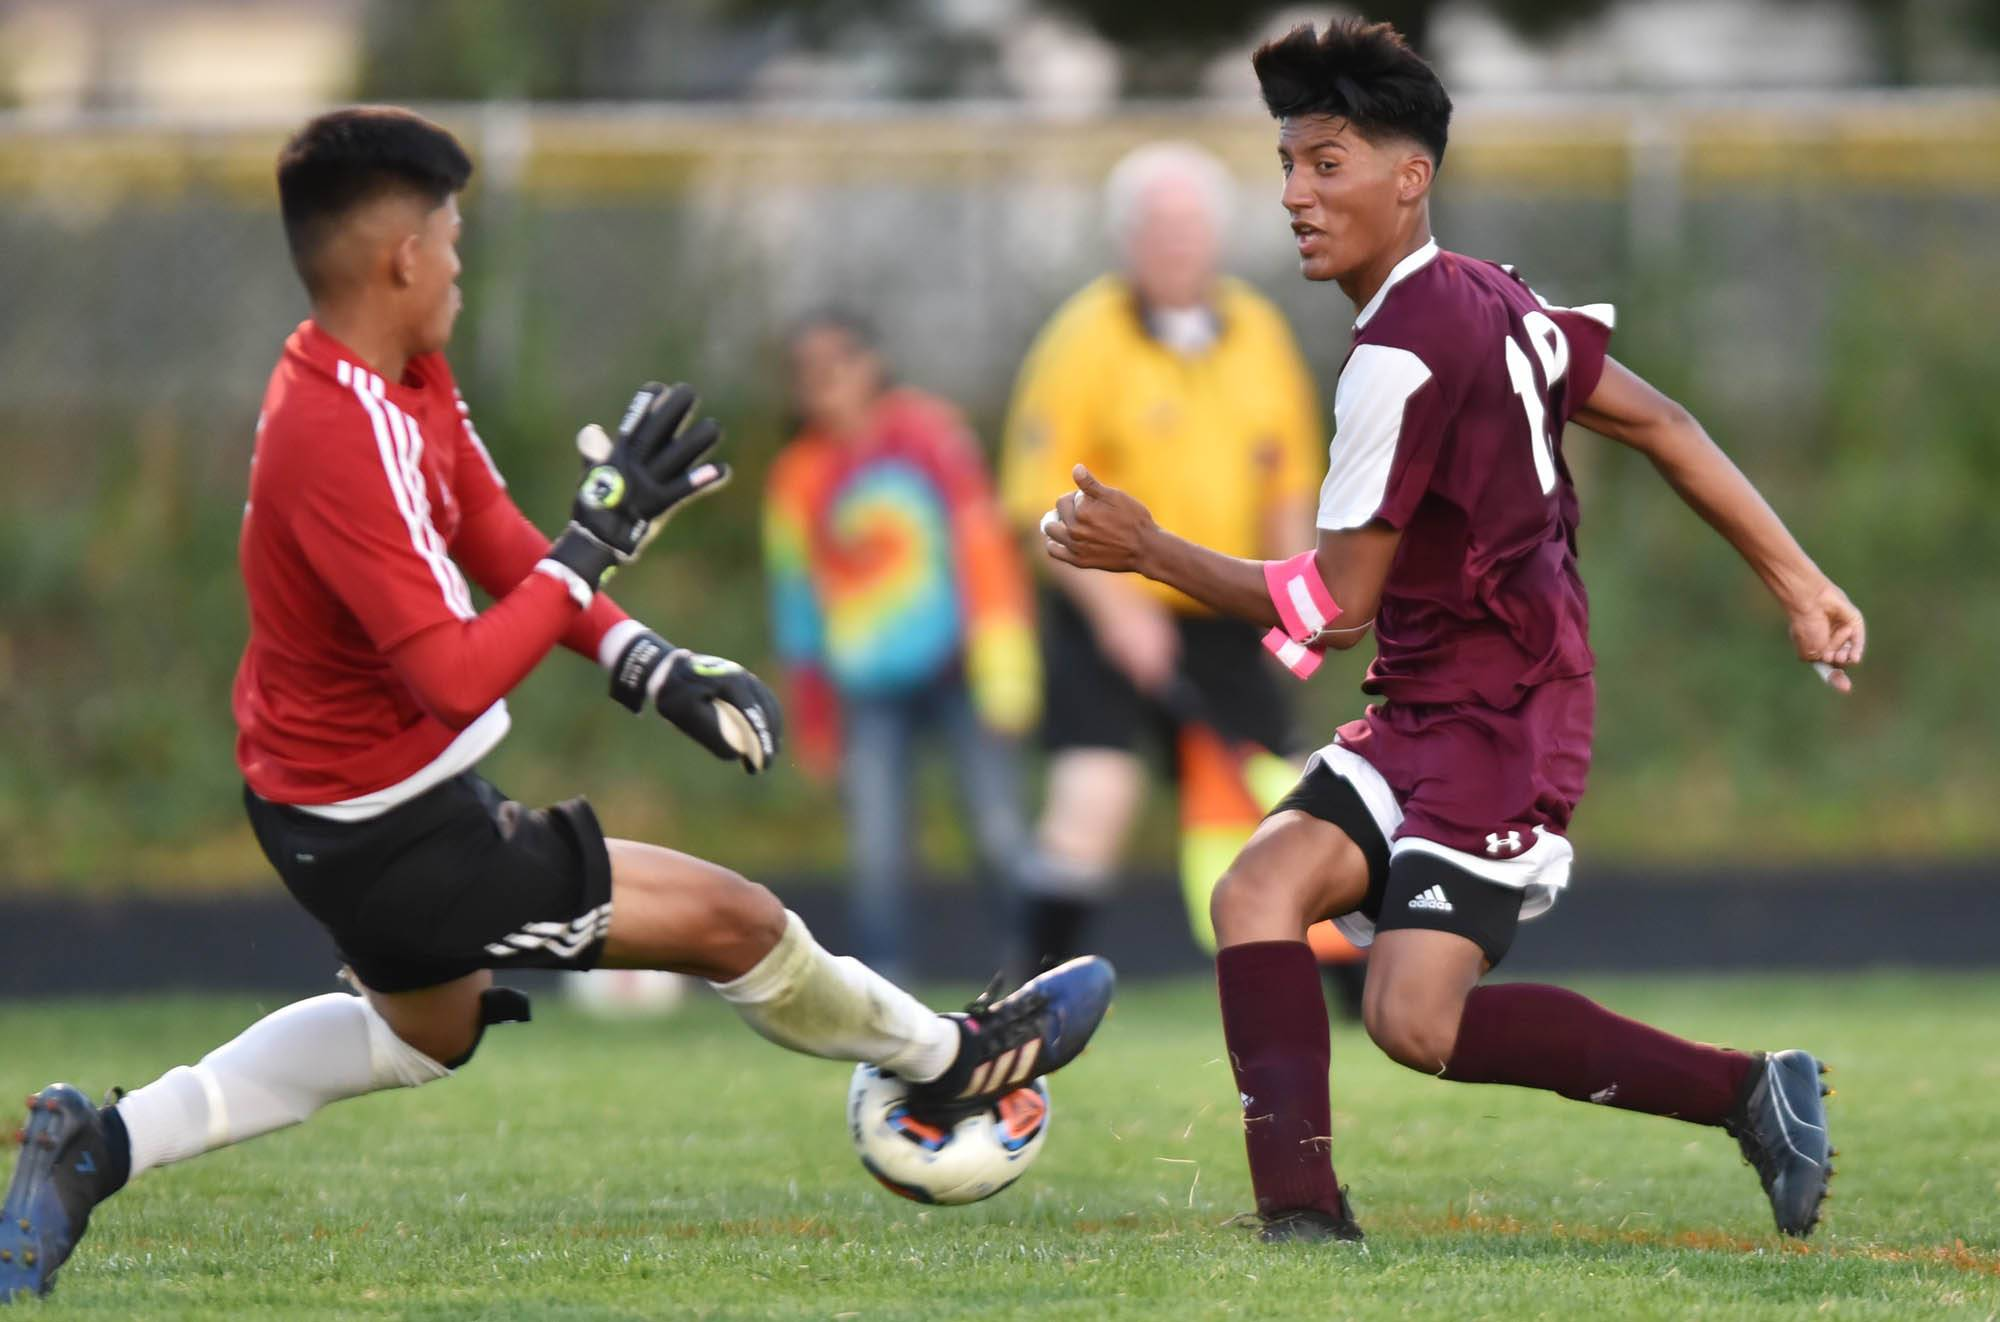 Elgin's Jesus Lopez has his shot stopped by Larkin goalkeeper Bryan Arredondo in the first half at Memorial Field at Elgin High School Tuesday.